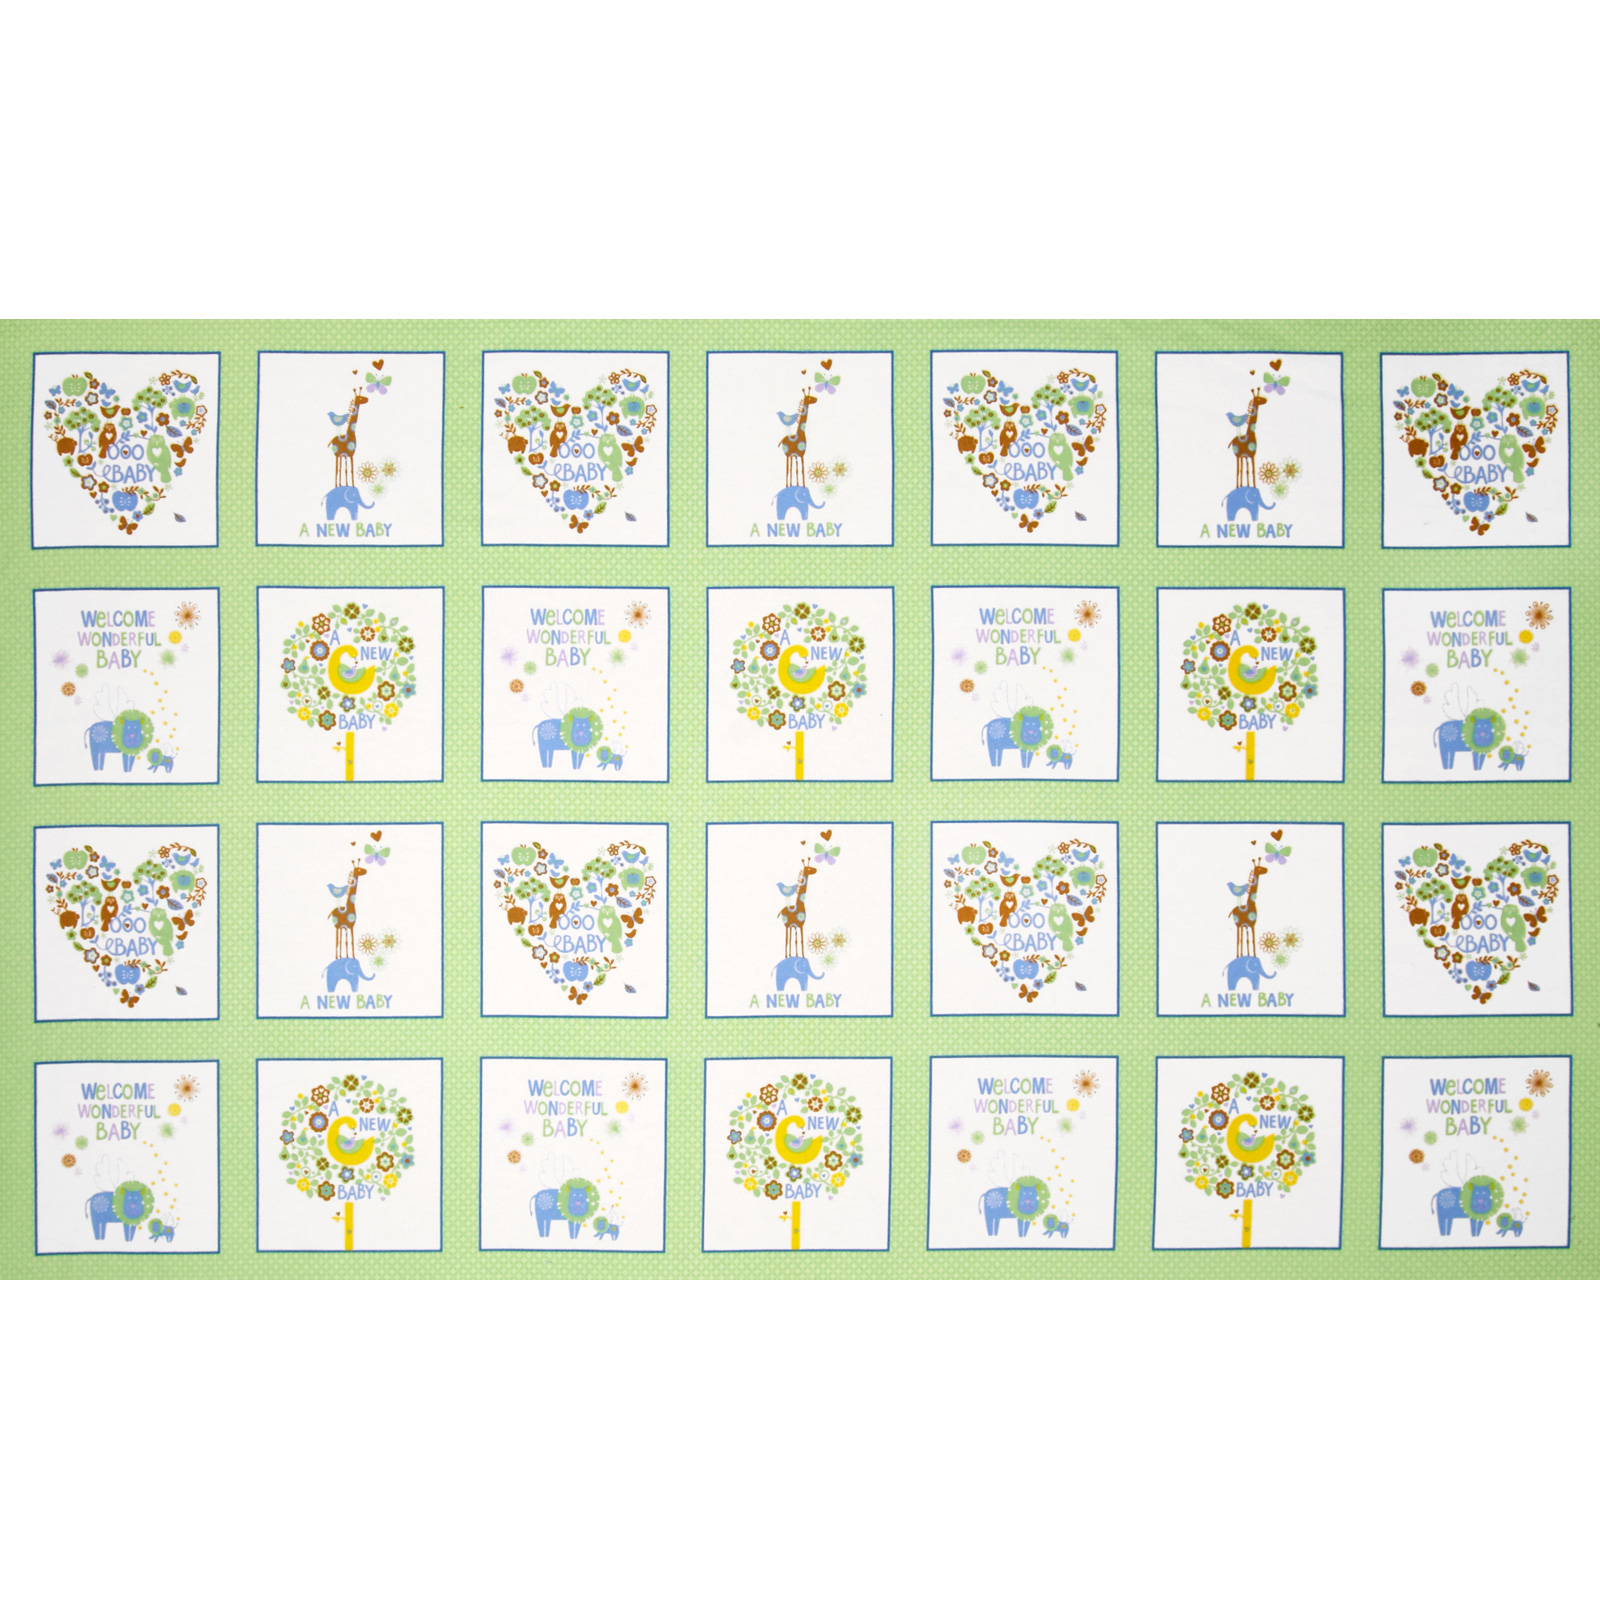 OOO Baby Flannel Patchwork Panel Green Fabric